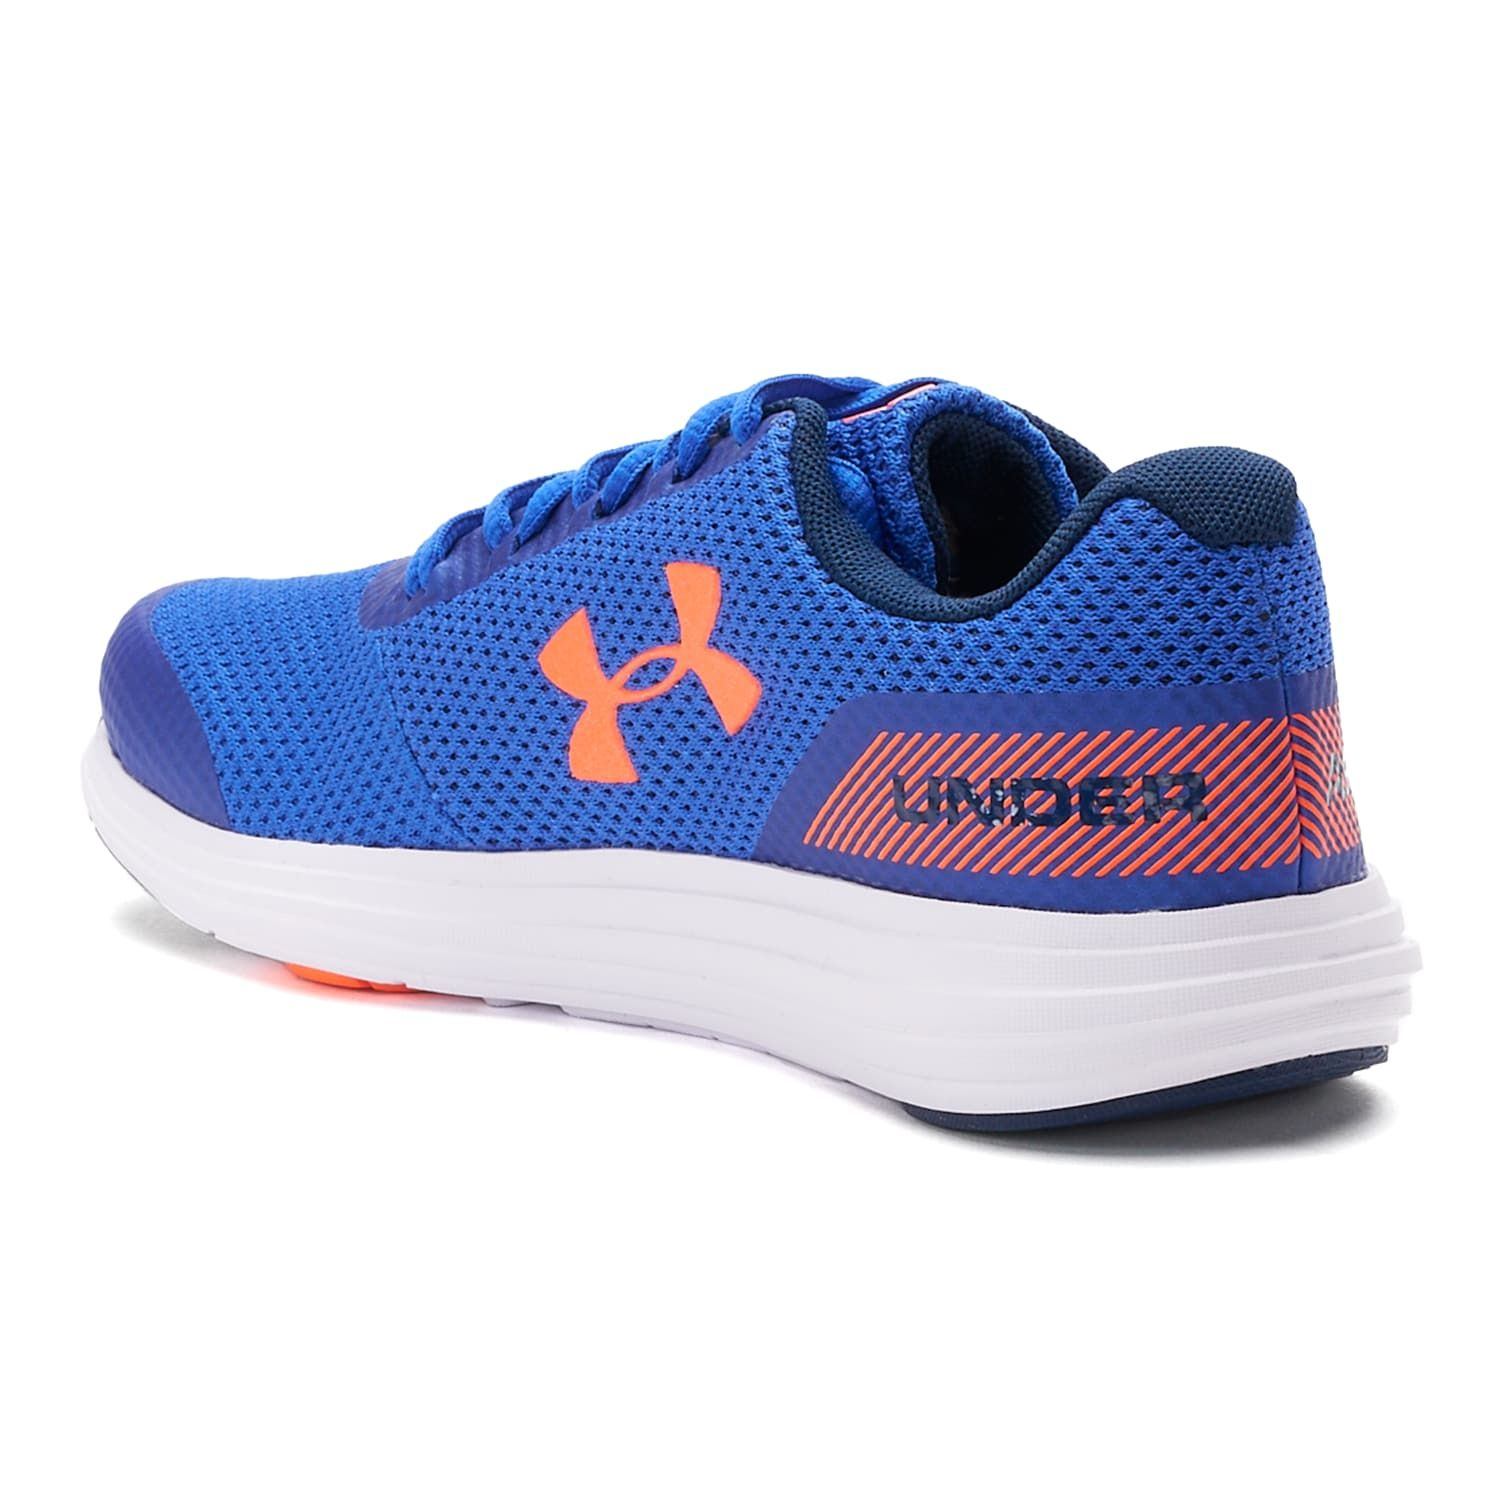 low priced 3928a 934f9 Under Armour Surge Grade School Boys  Running Shoes  Grade,  Surge,  Armour,   School